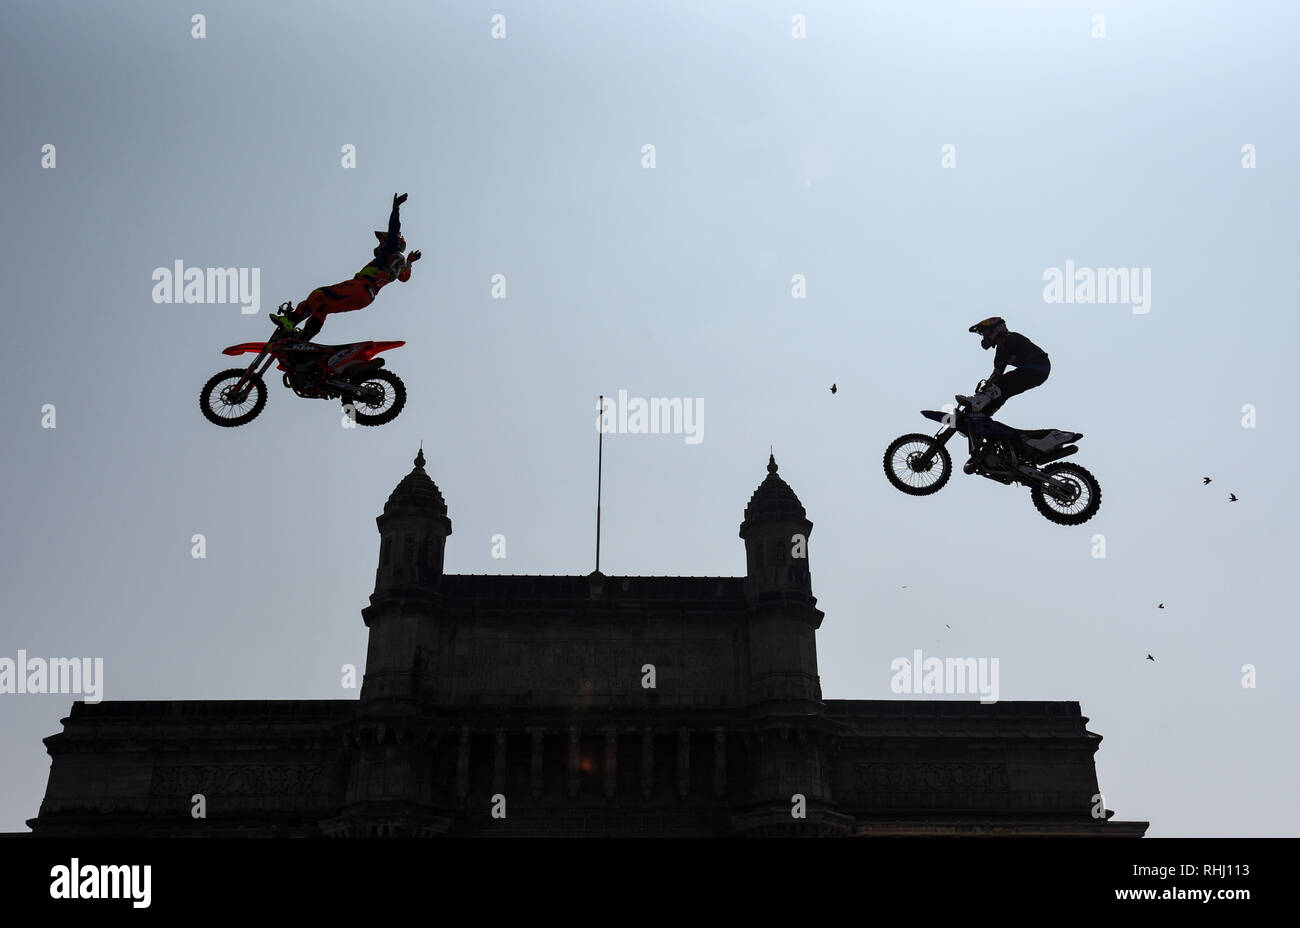 Beijing, India. 2nd Feb, 2019. FMX Riders perform freestyle at Gateway of India in Mumbai, India, Feb. 2, 2019. Credit: Stringer/Xinhua/Alamy Live News - Stock Image